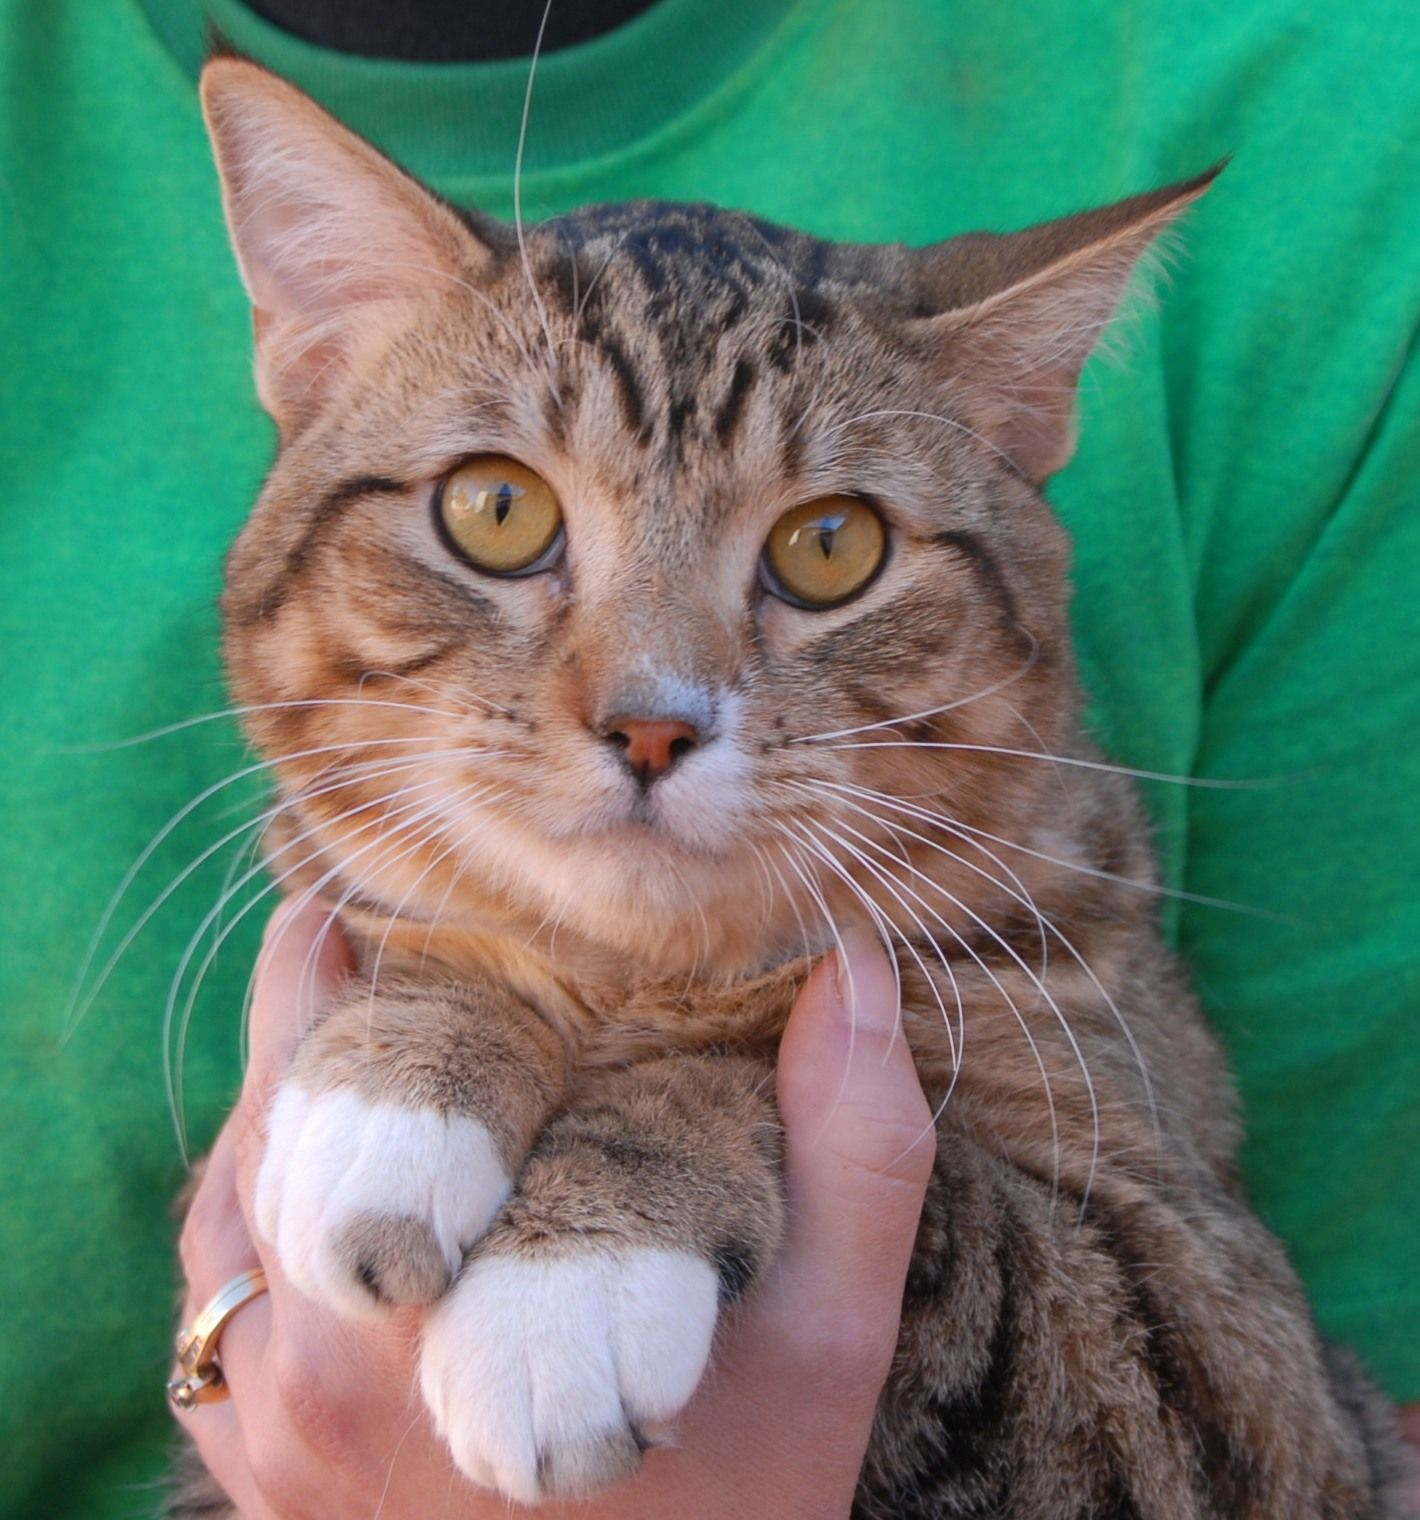 Von Is A Playful Cutie 1 Year Of Age Who Still Acts Like A Kitten He Enjoys Chasing The Laser Light And Chatting With You And Lea Cat Adoption Animals Cats